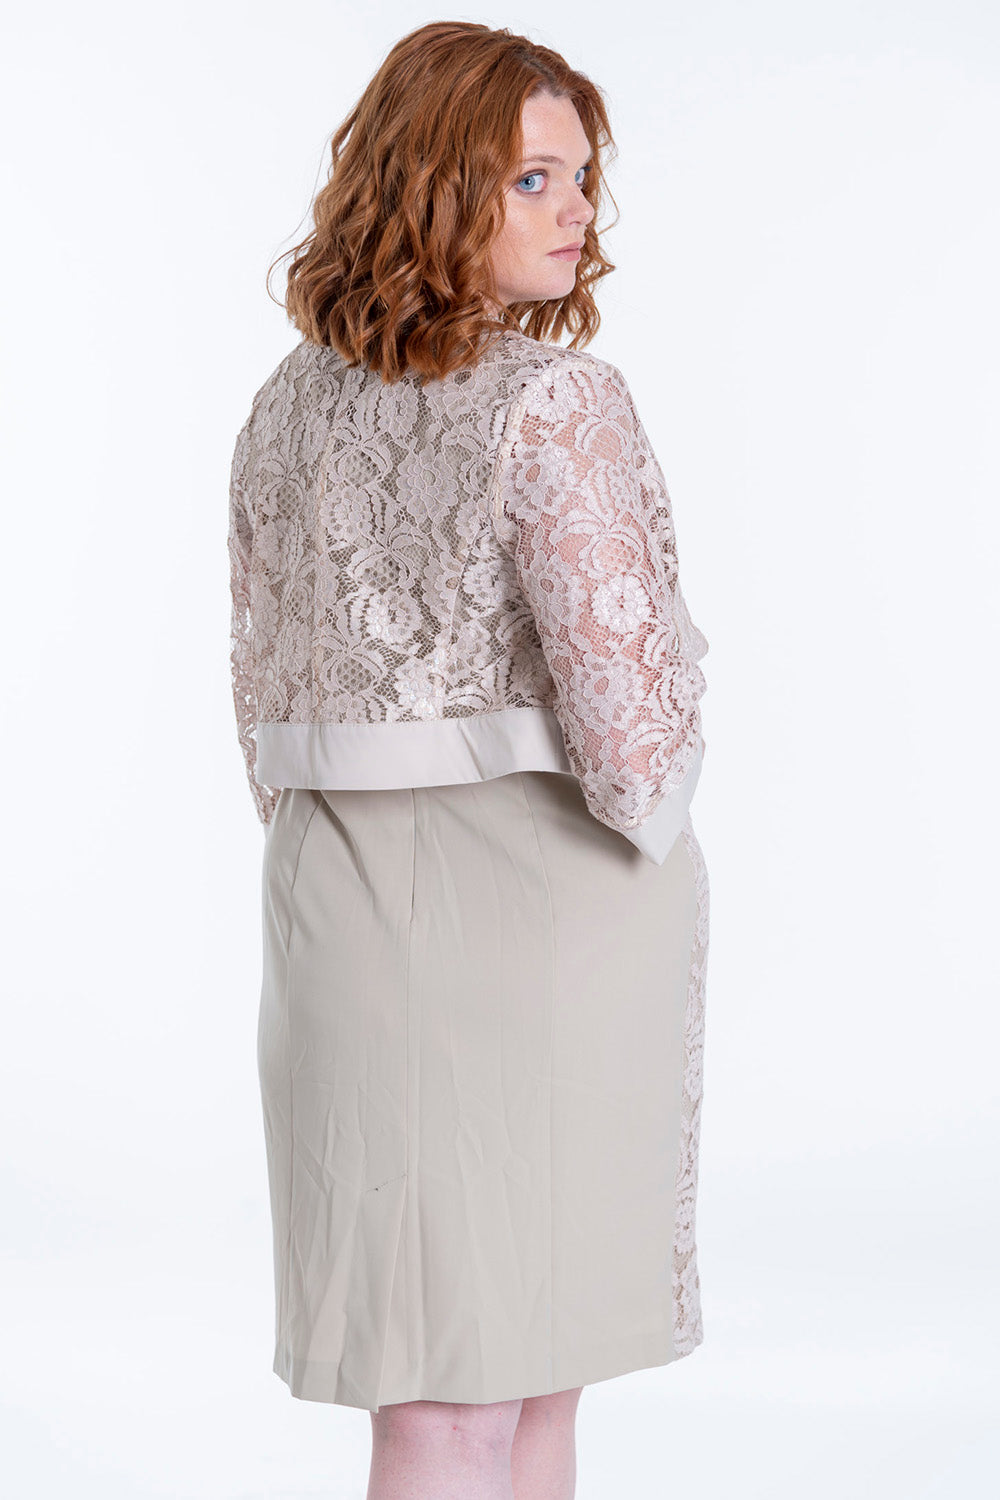 Lace co-ord blazer with pearls neck